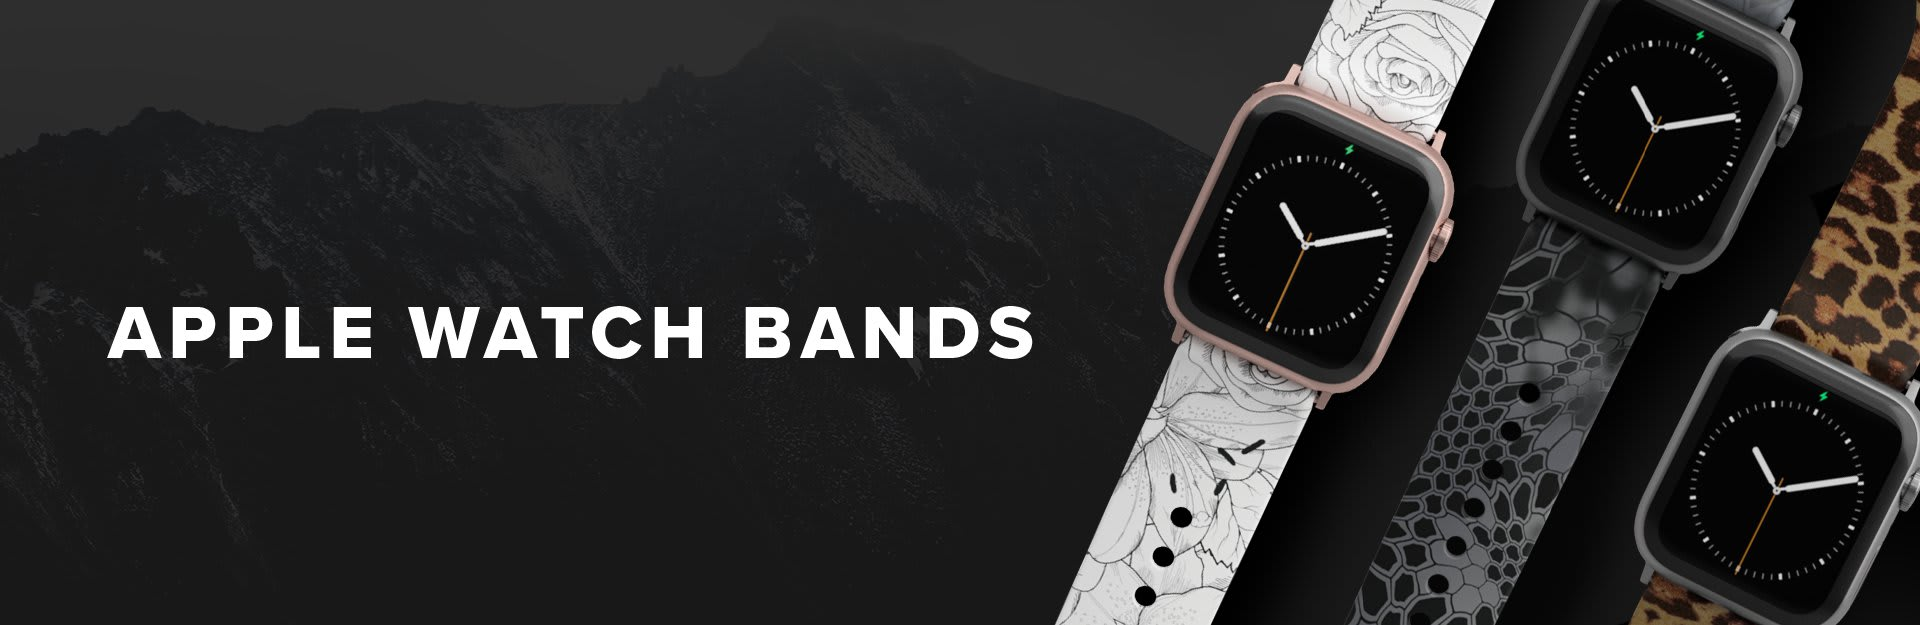 Apple Watch Bands, a winter rose, kryptek typhon and leopard watch band are laid out next to each other